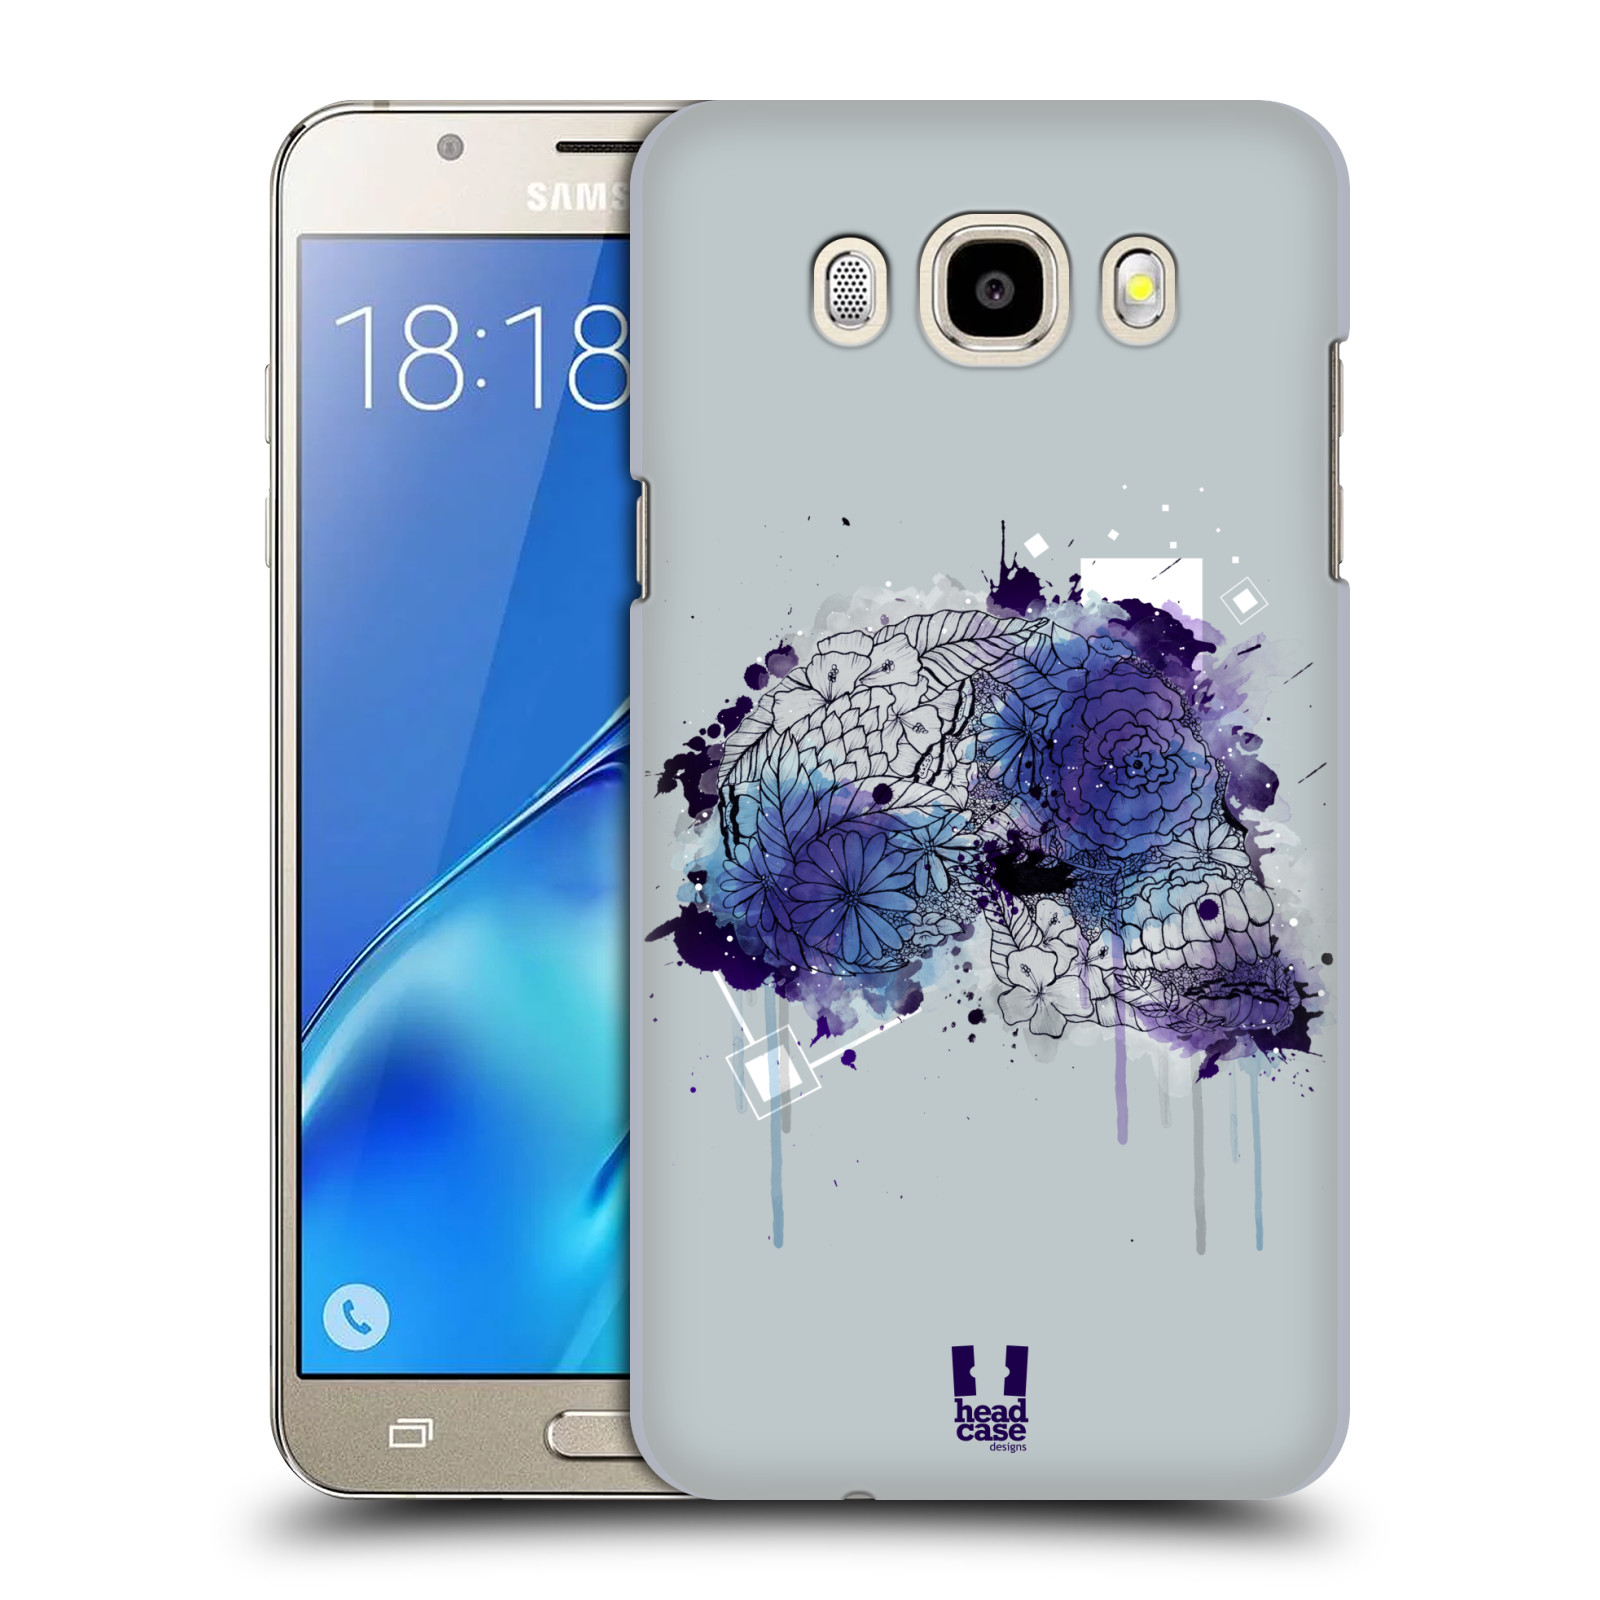 custodia samsung galaxy j5 2016 teschio